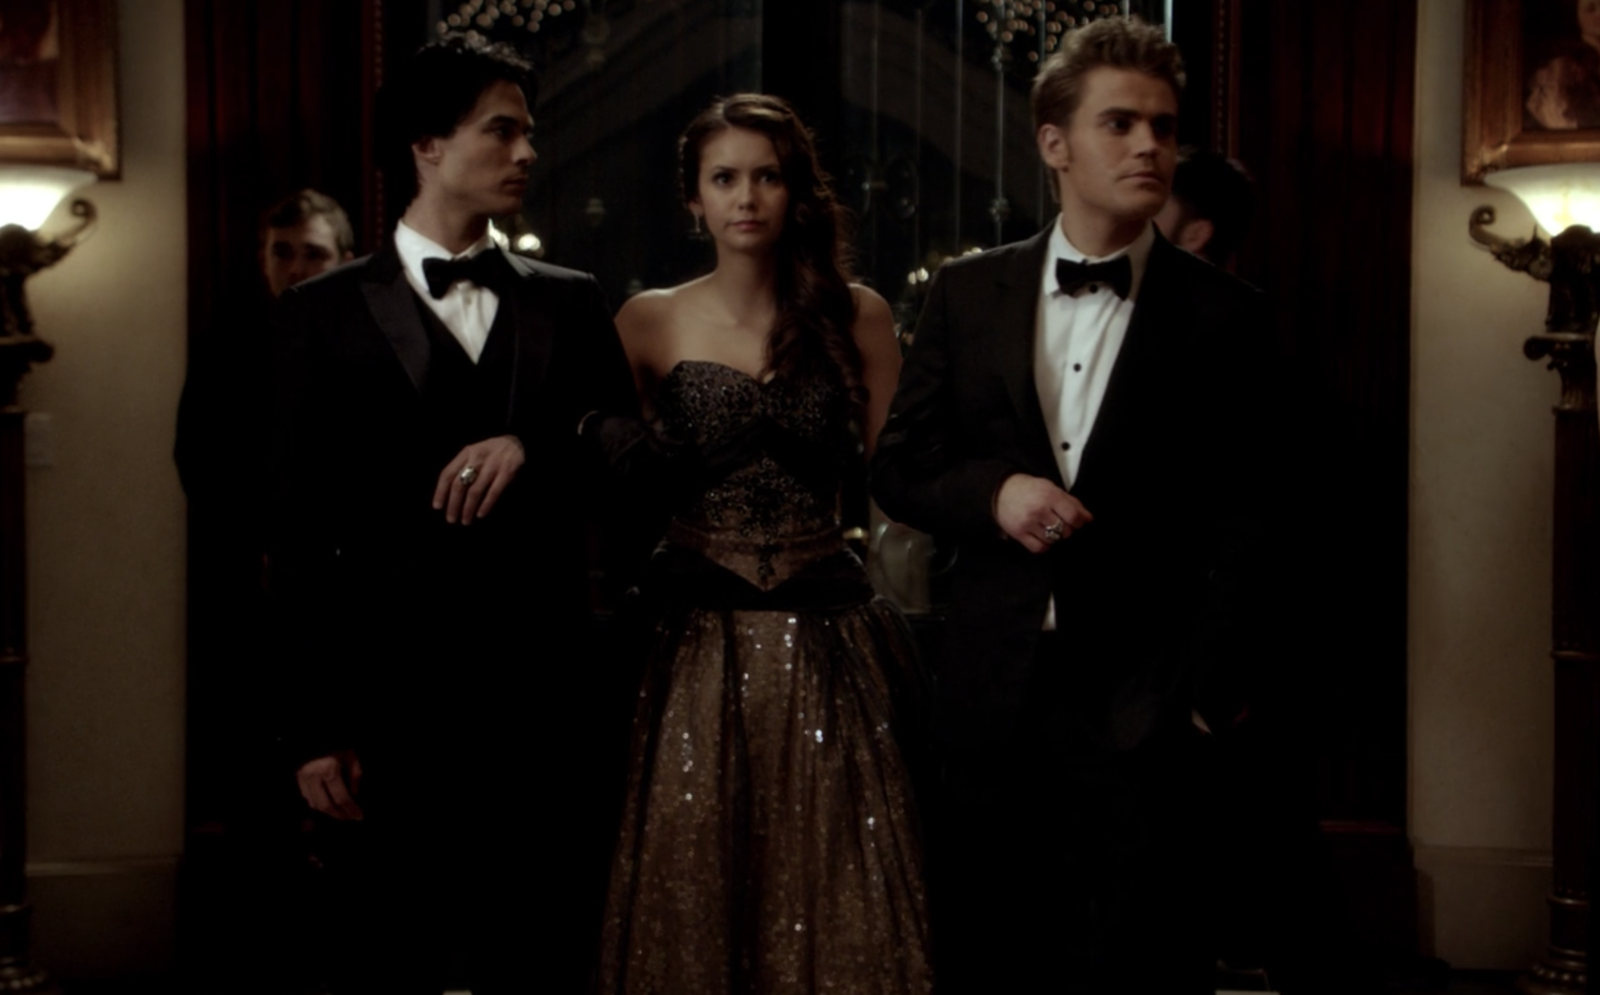 The original ending for  The Vampire Diaries  would've  featured Damon and Stefan both dying to save Elena  — the brothers would then have watched Elena live a full life. -  Creators Julie Plec and Kevin Williamson  came up with the original ending during Season 2 , but since the show went on for many more seasons, the original ending was changed.